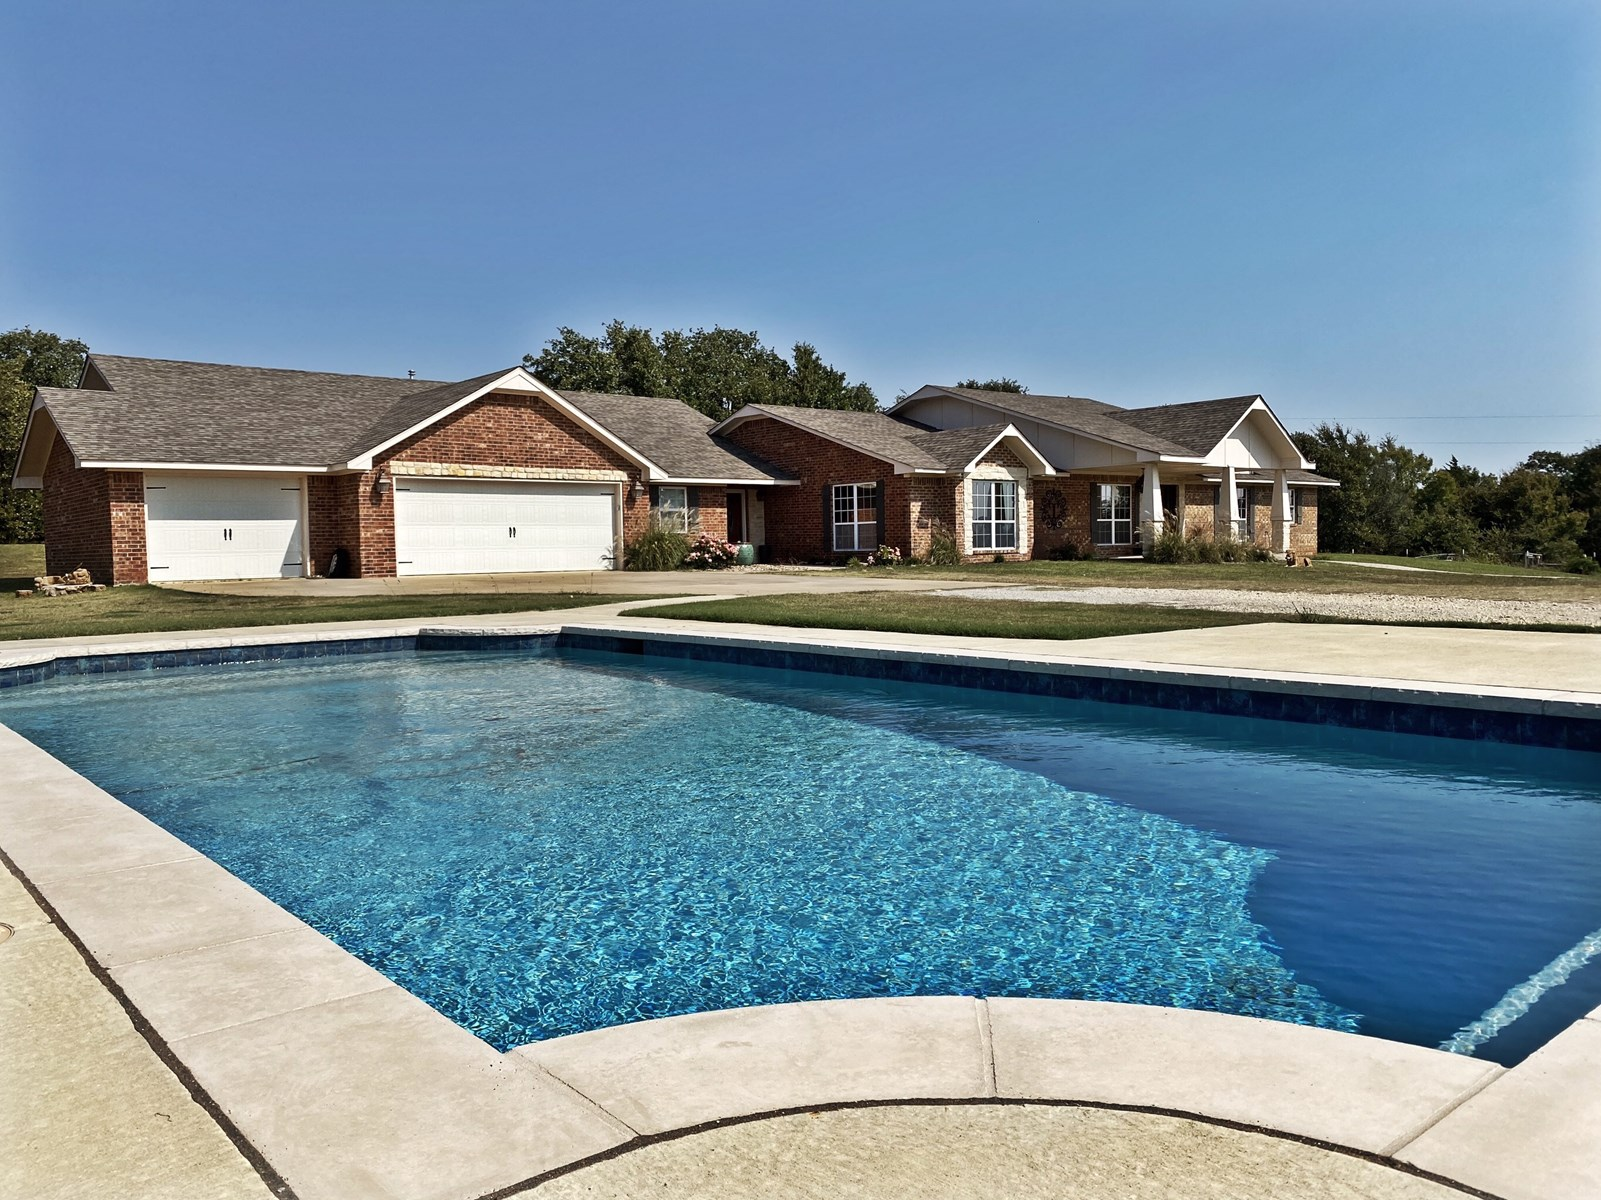 SOUTHERN OKLAHOMA COUNTRY HOME + POOL & LAND-JOHNSTON COUNTY